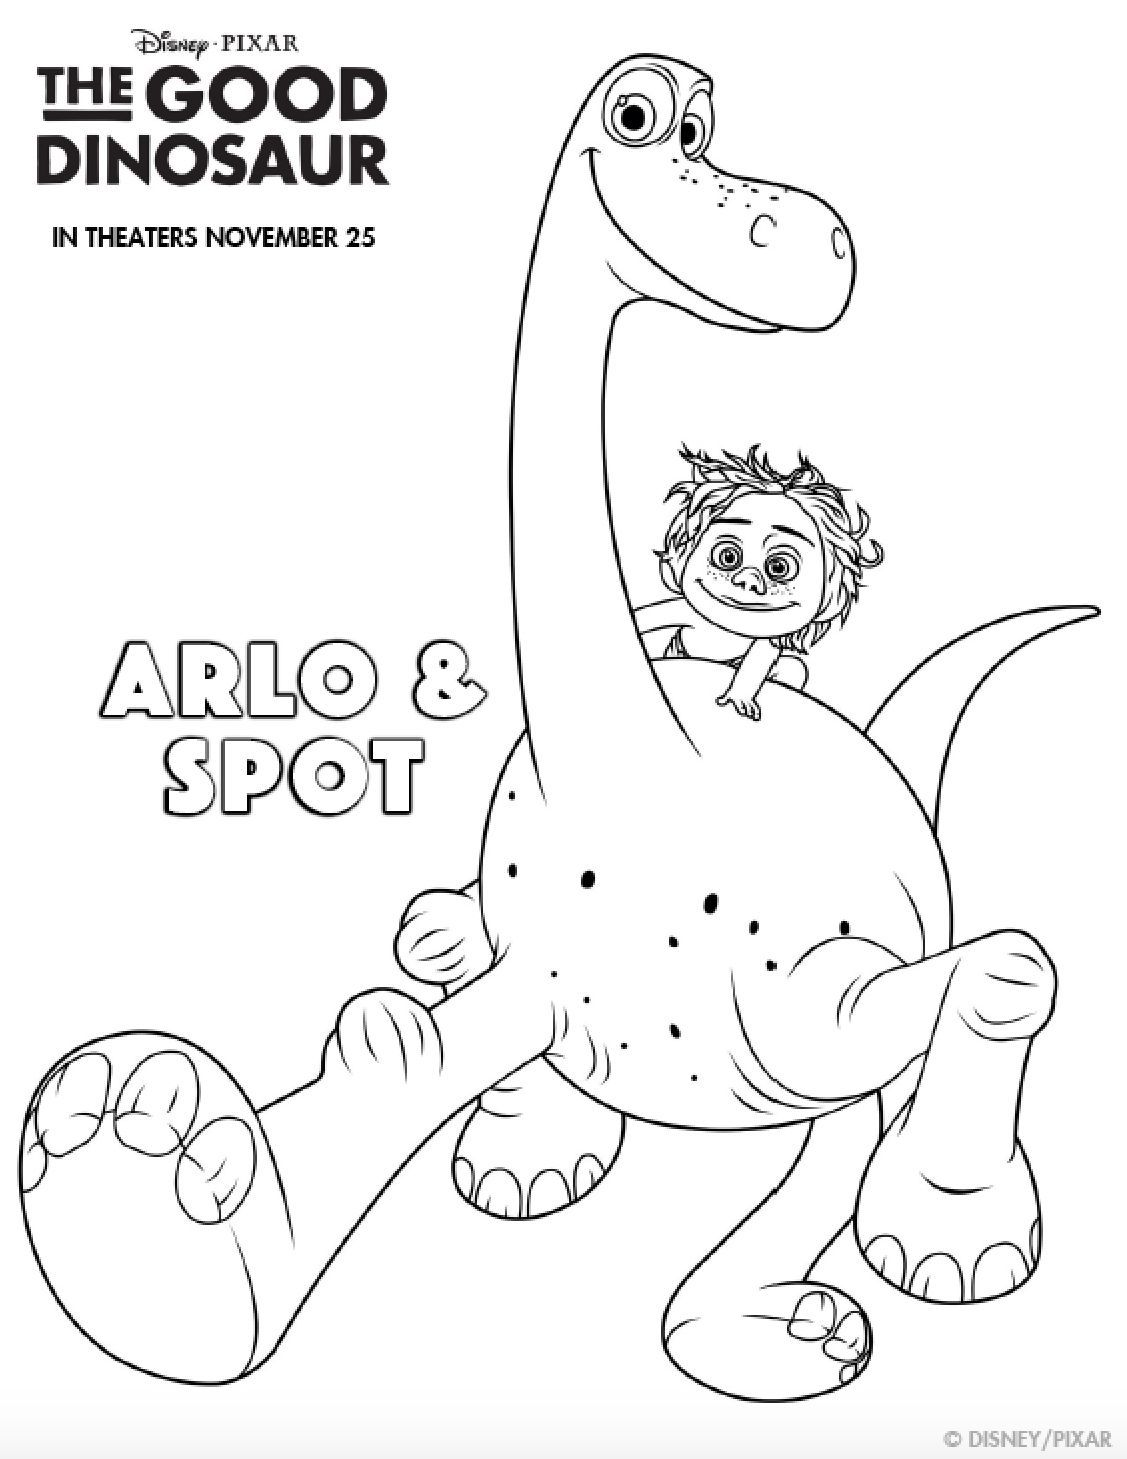 Childrens coloring dinosaur pages - The Good Dinosaur Coloring Pages